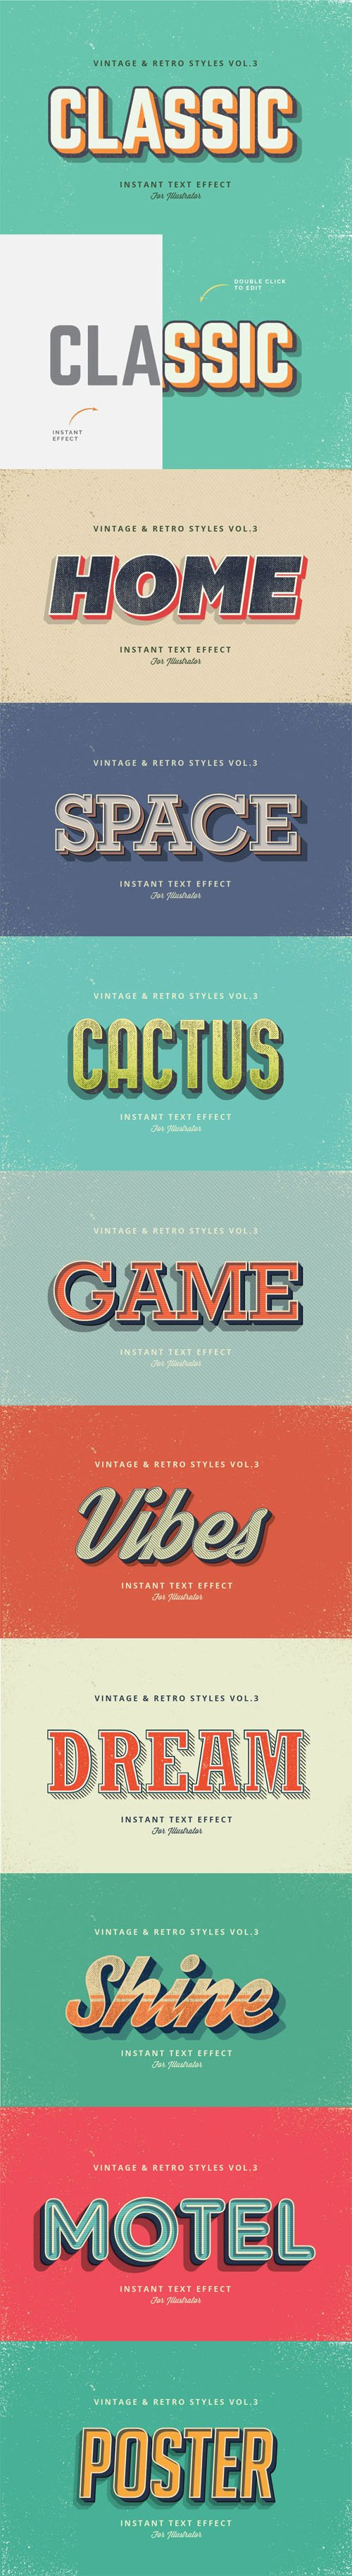 10 Vintage and Retro Graphic Styles Vol.3 for Adobe Illustrator